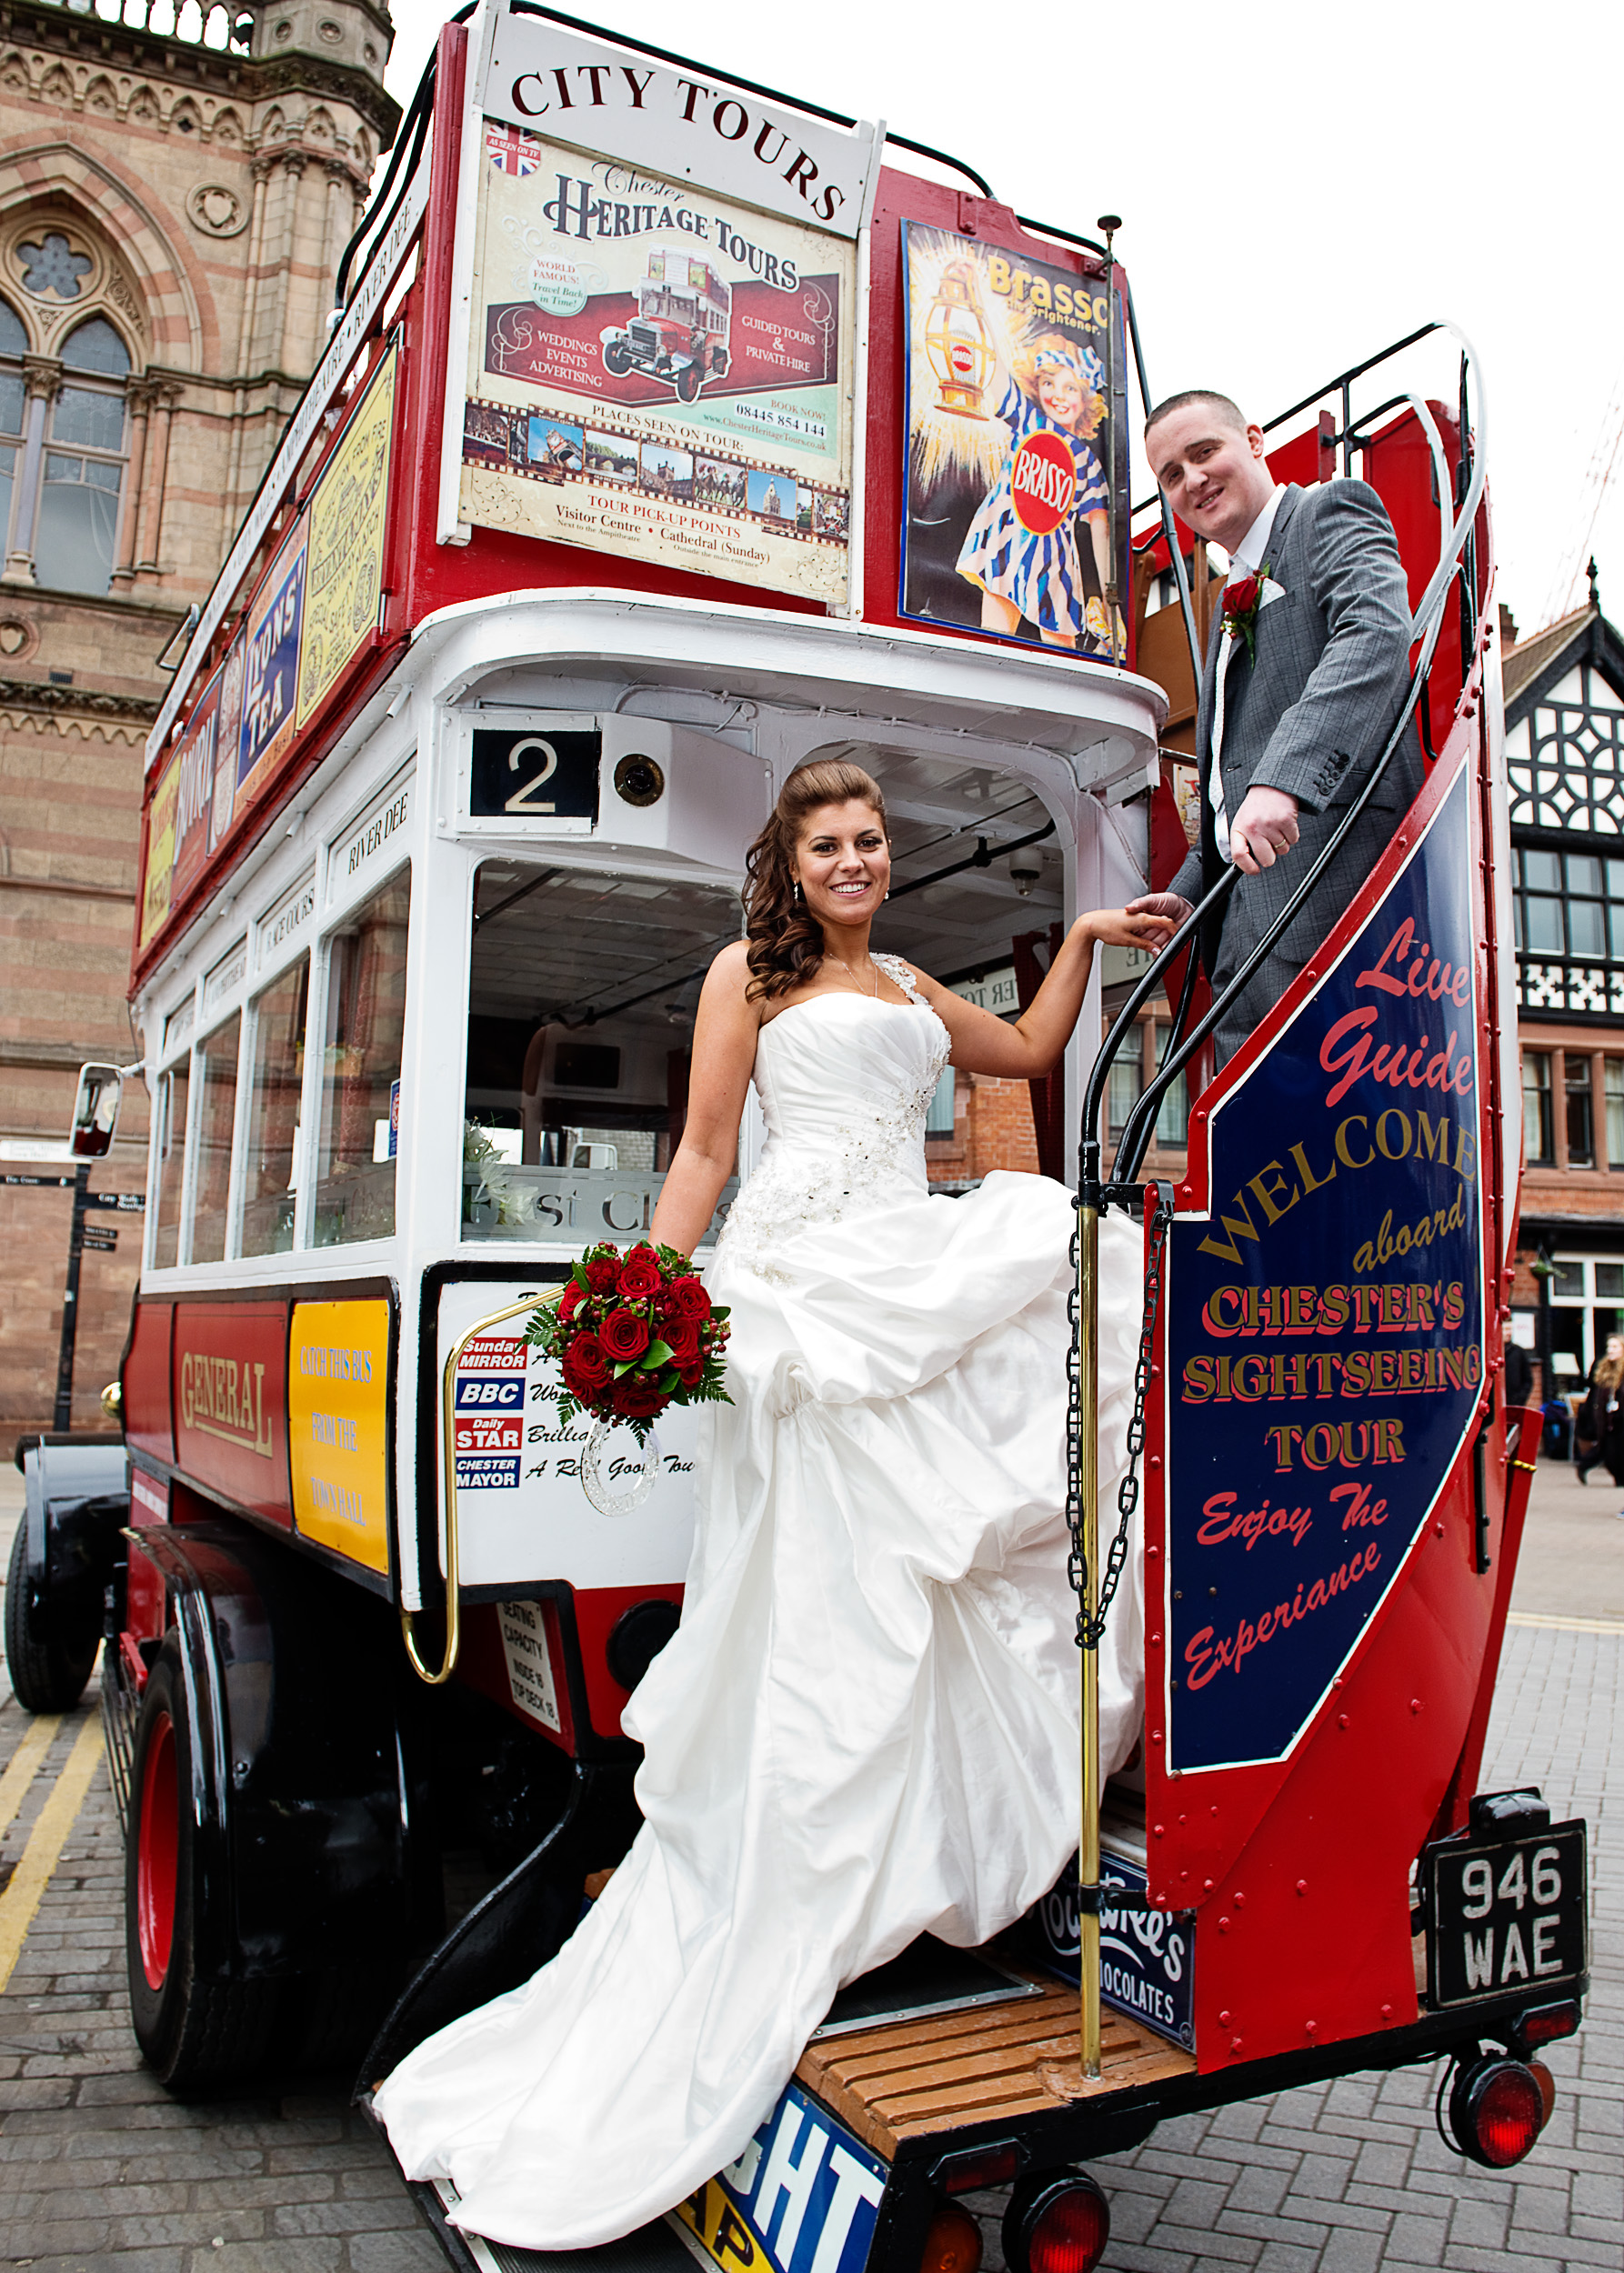 Town Hall Chester wedding - the vintage bus driver and conductor kindly let us take some pictures